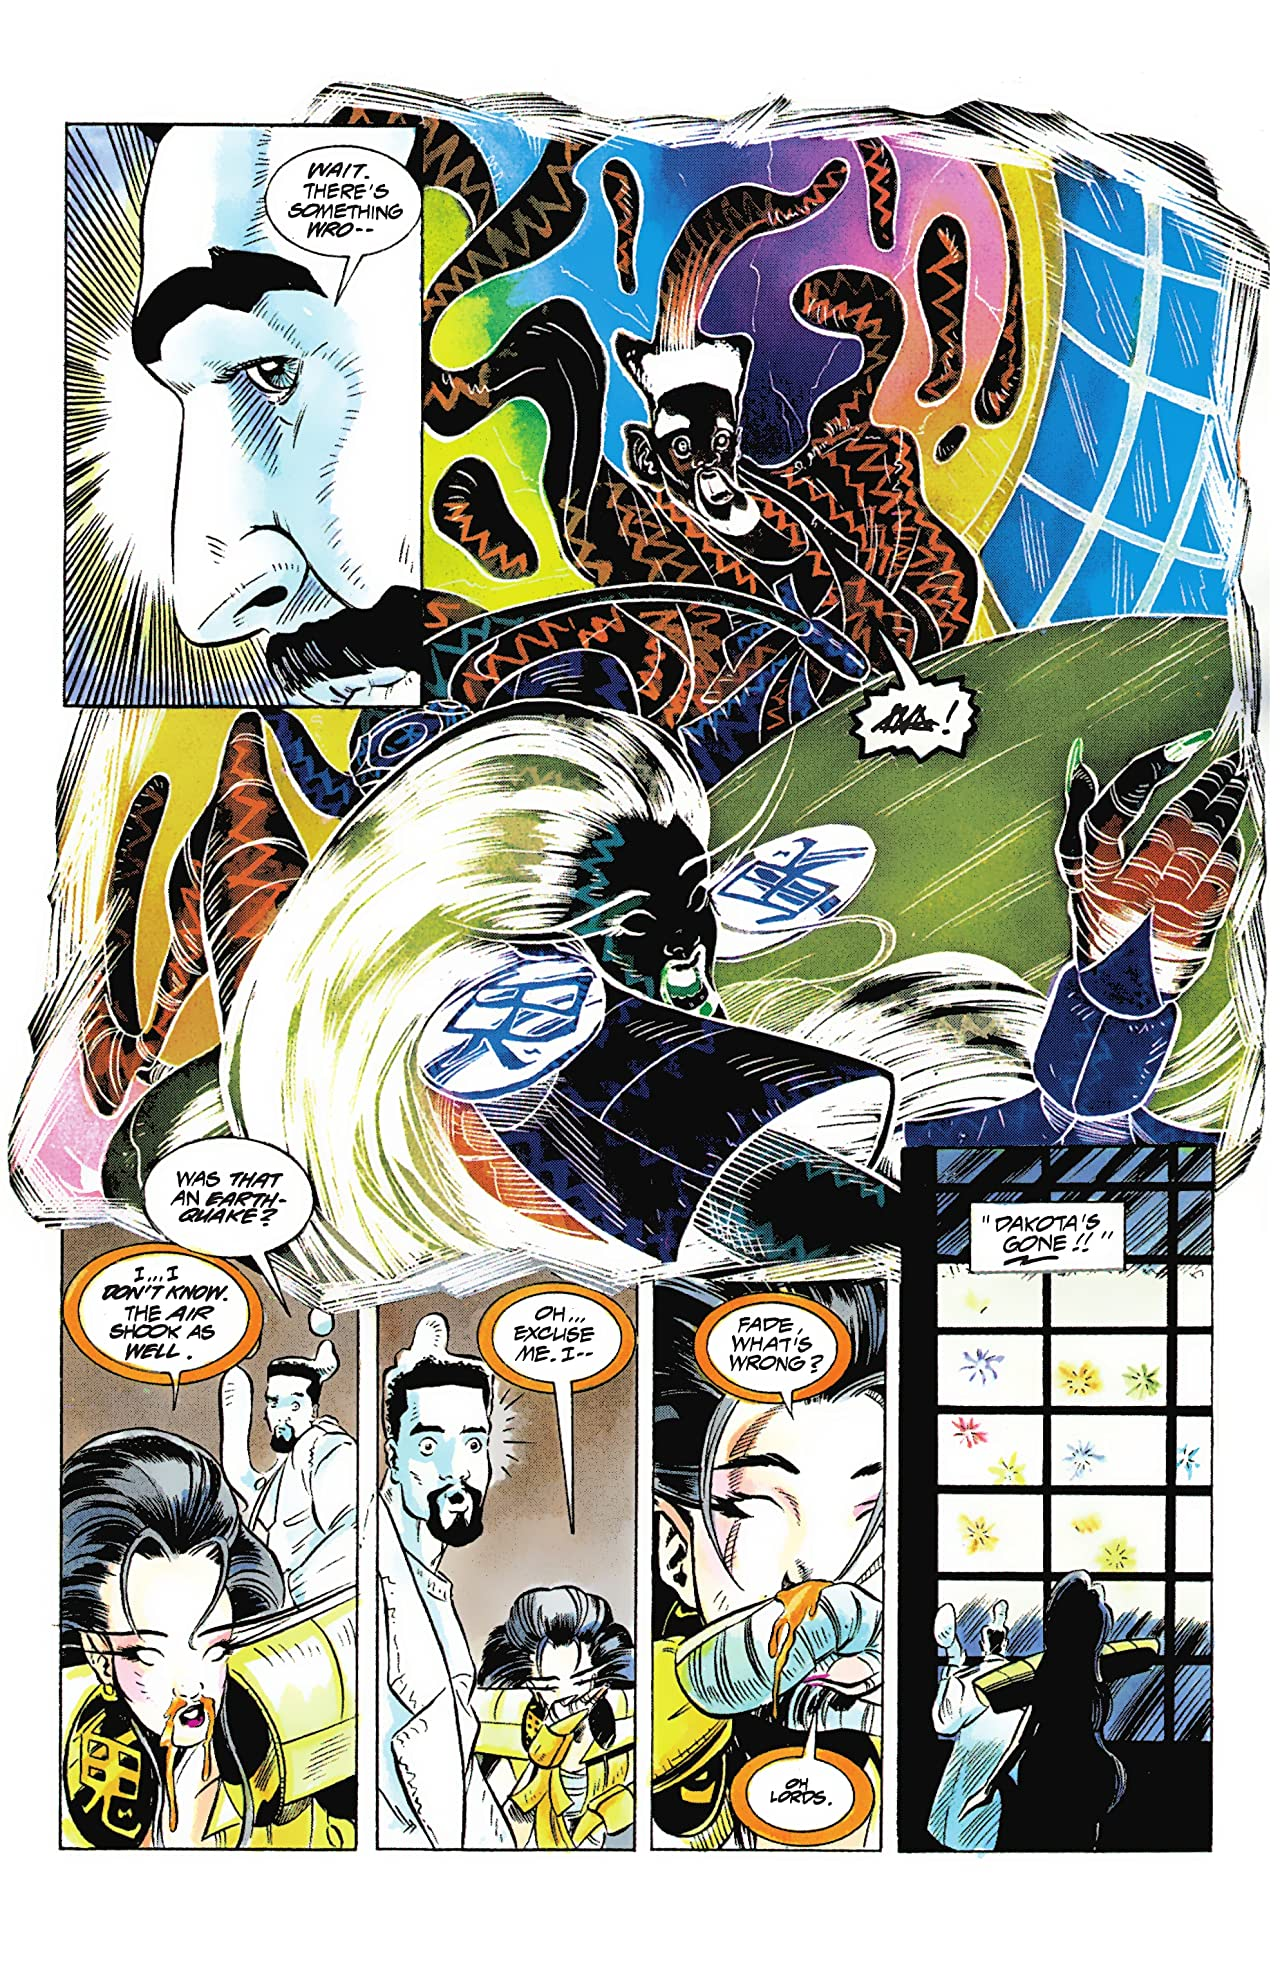 Blood Syndicate (1993-1995) #16